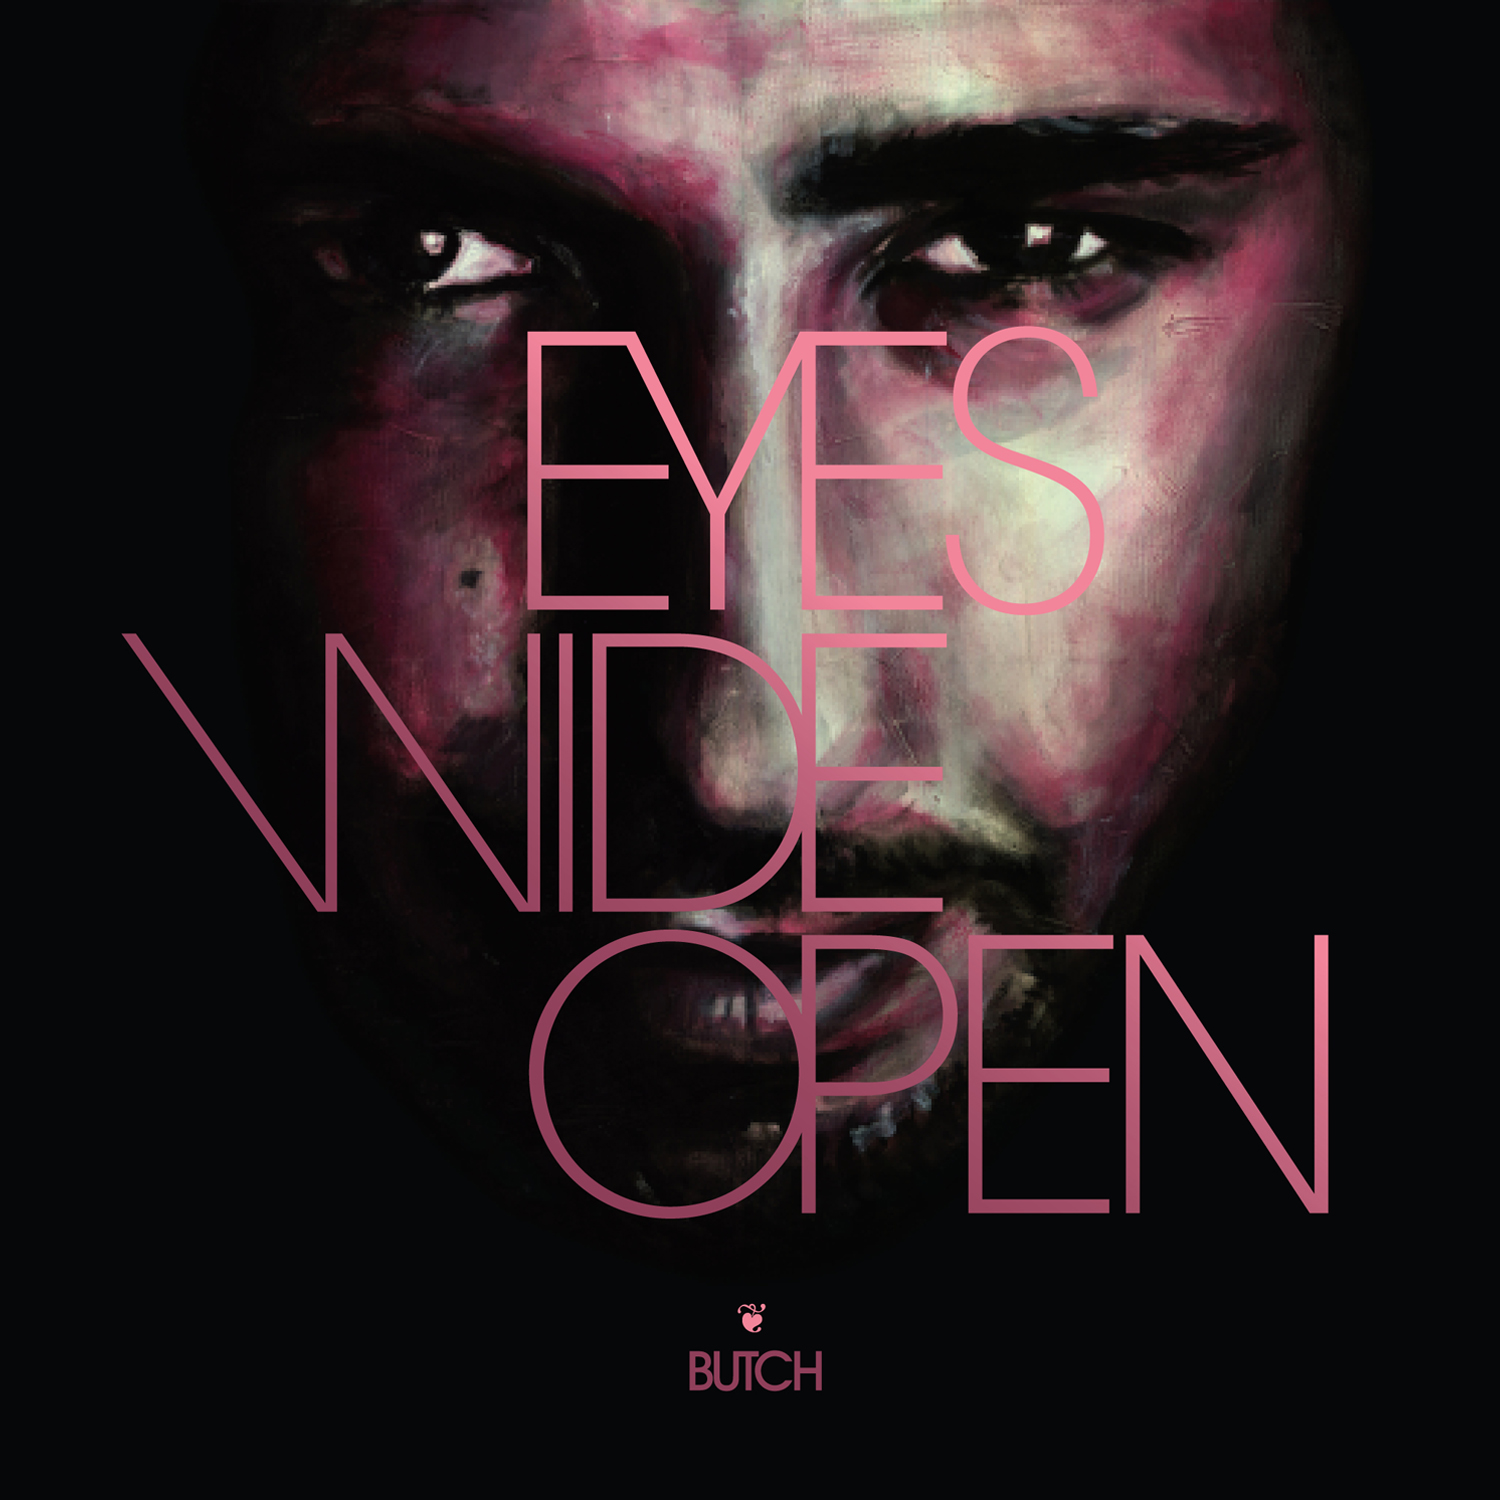 Butch - Eyes wide open